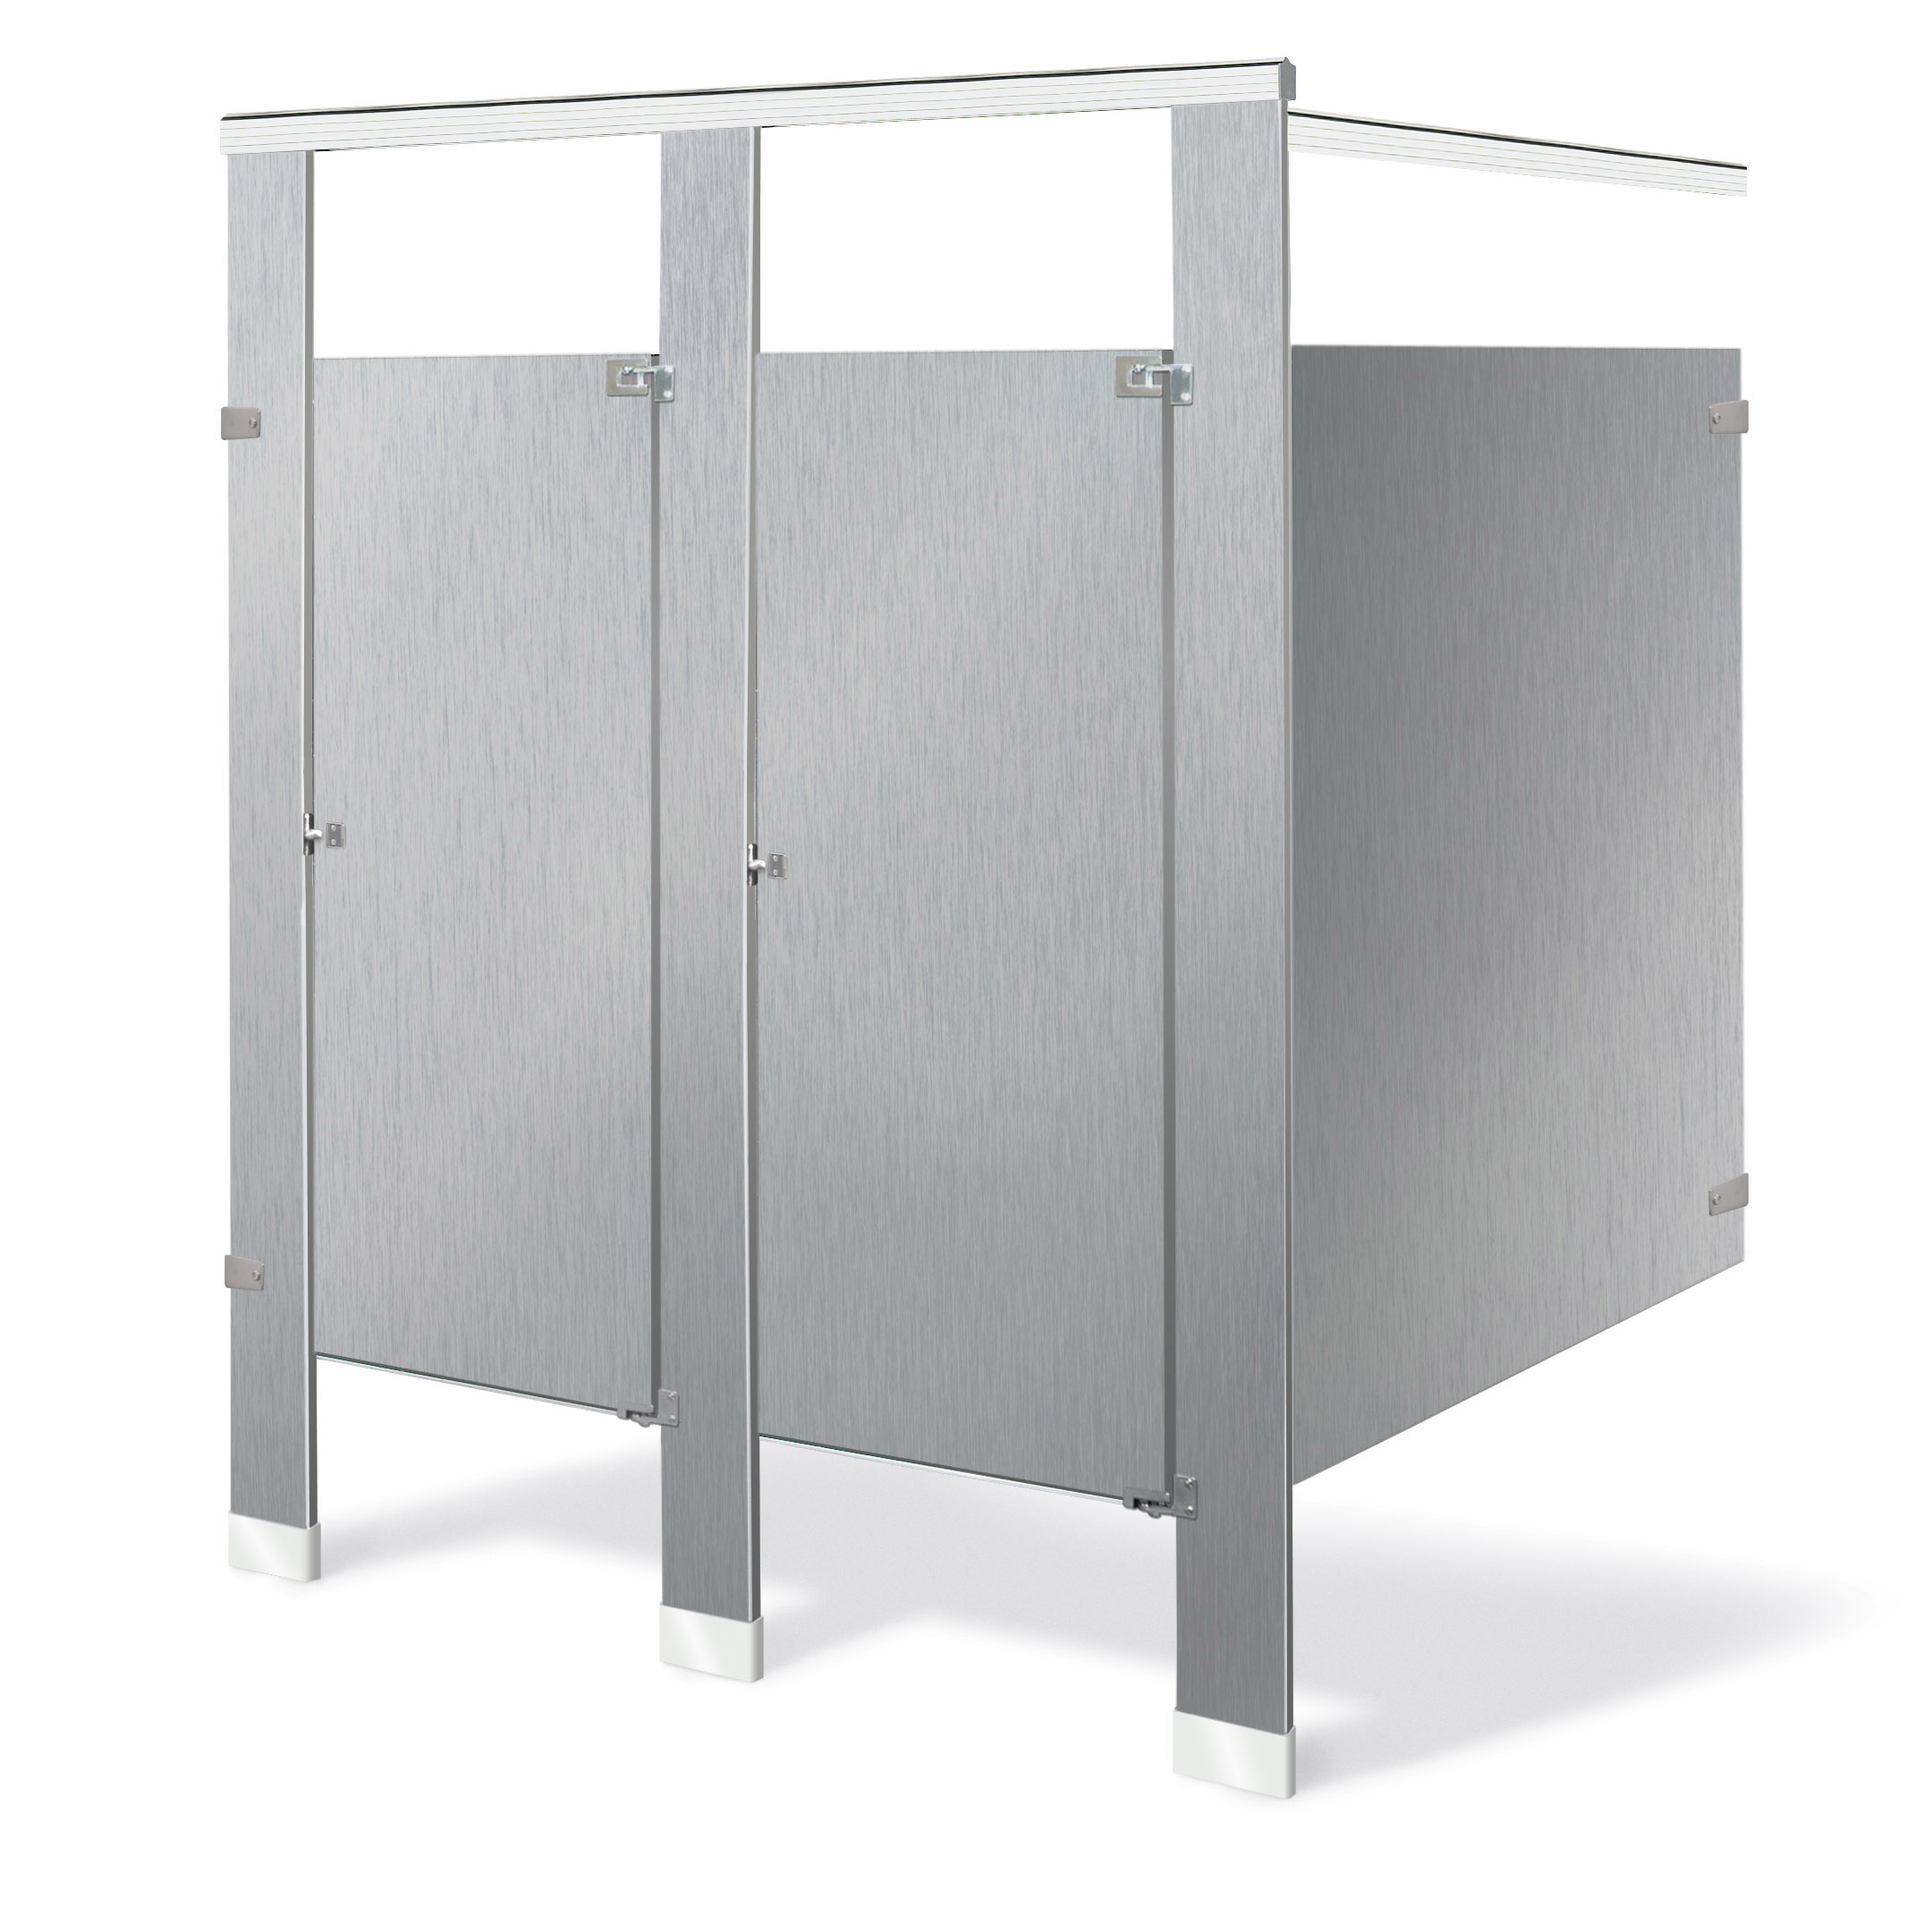 Bradley Mills Stainless Steel Bathroom Partitions